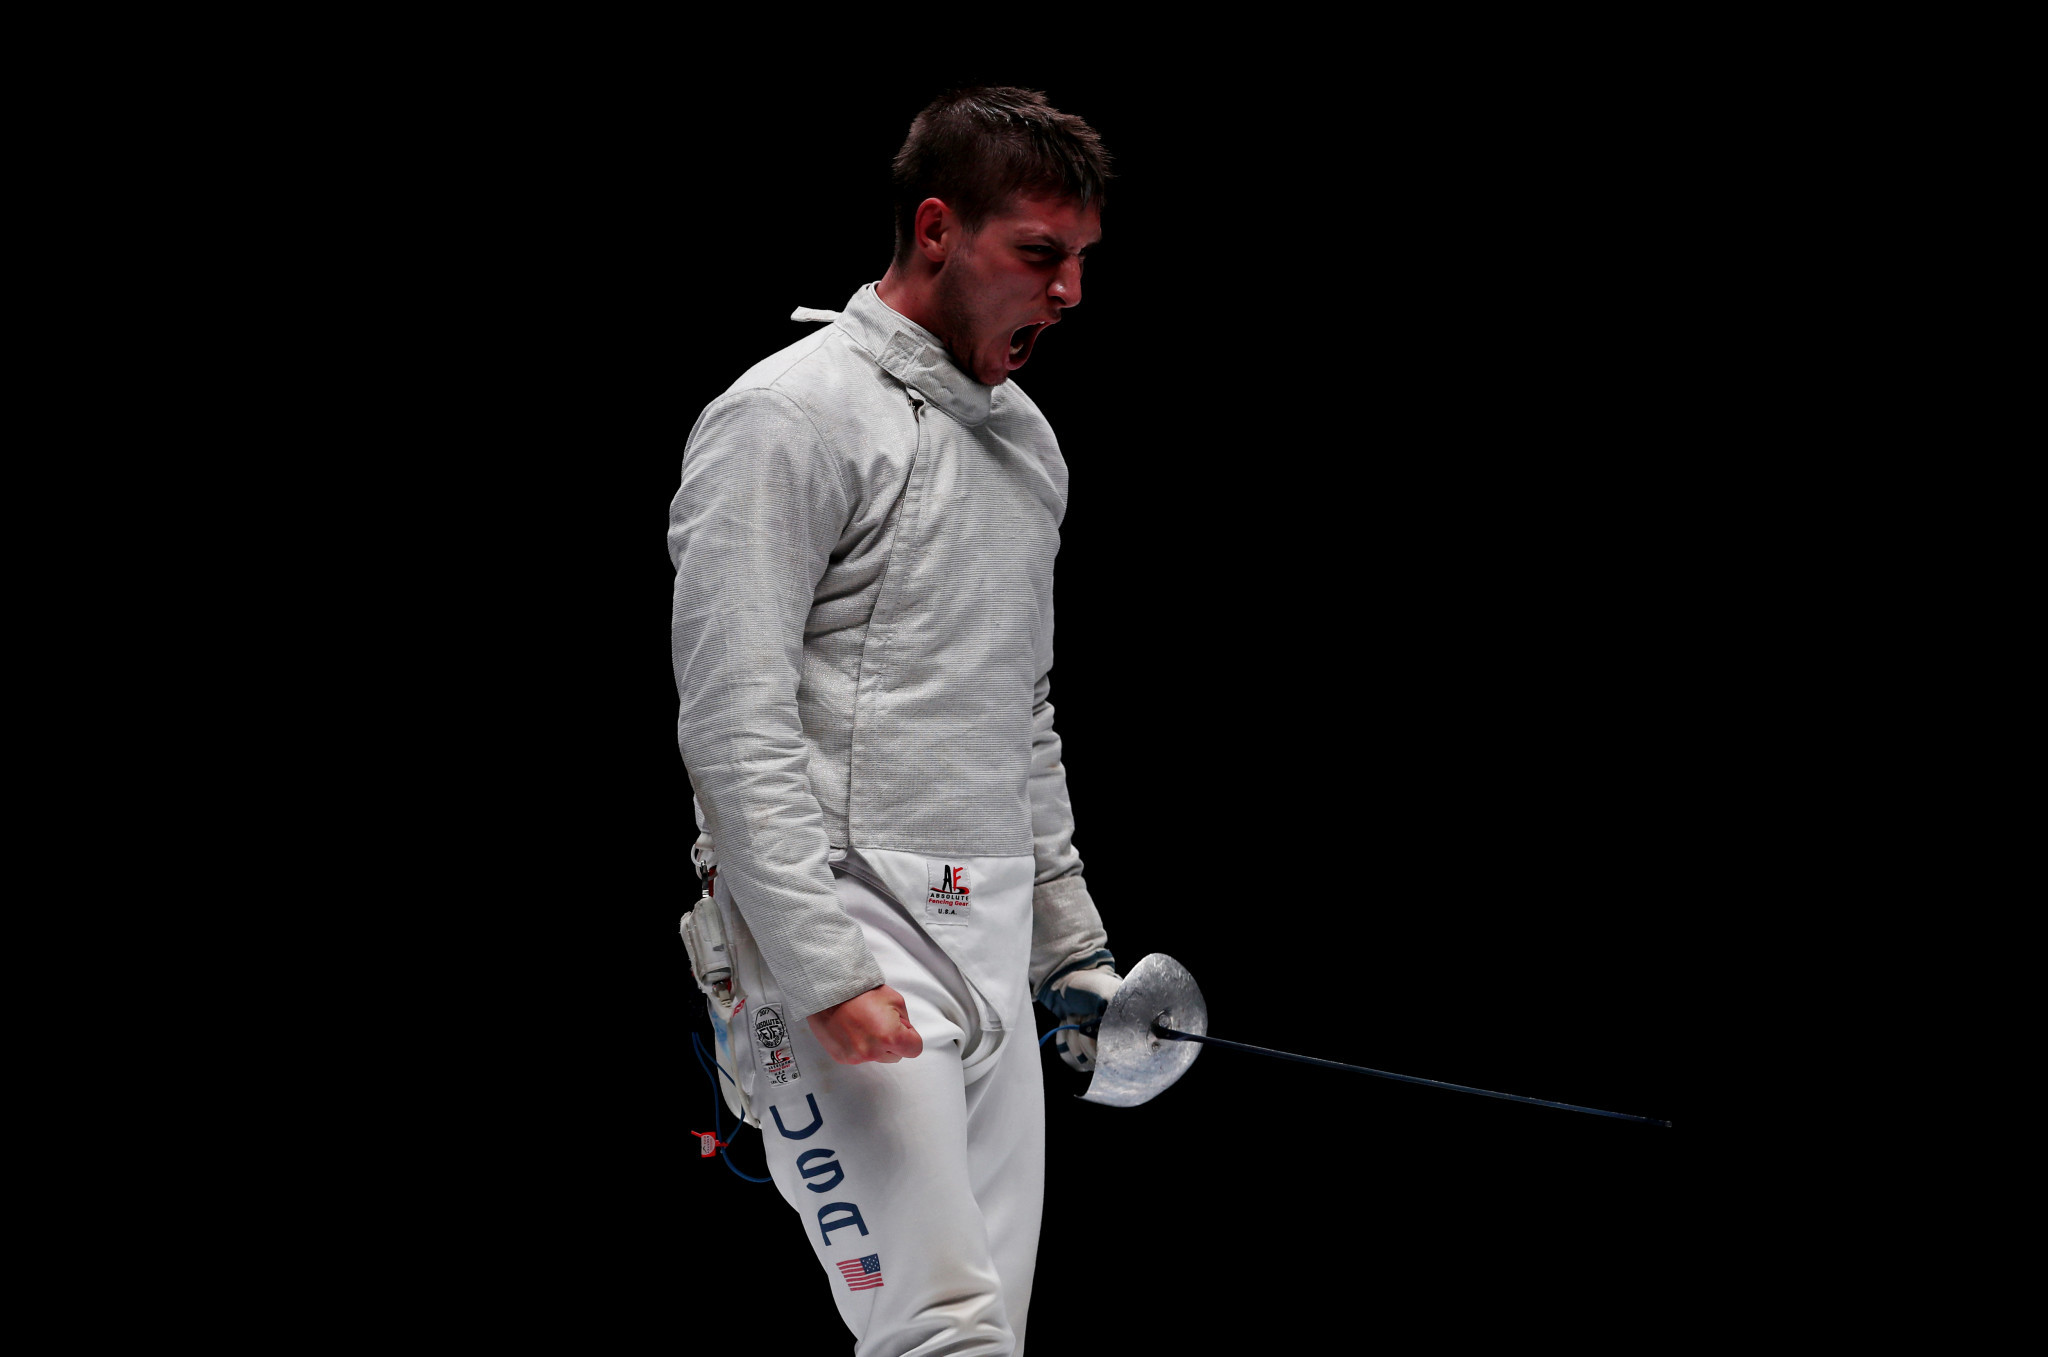 Dershwitz top seed for FIE Sabre World Cup in Warsaw